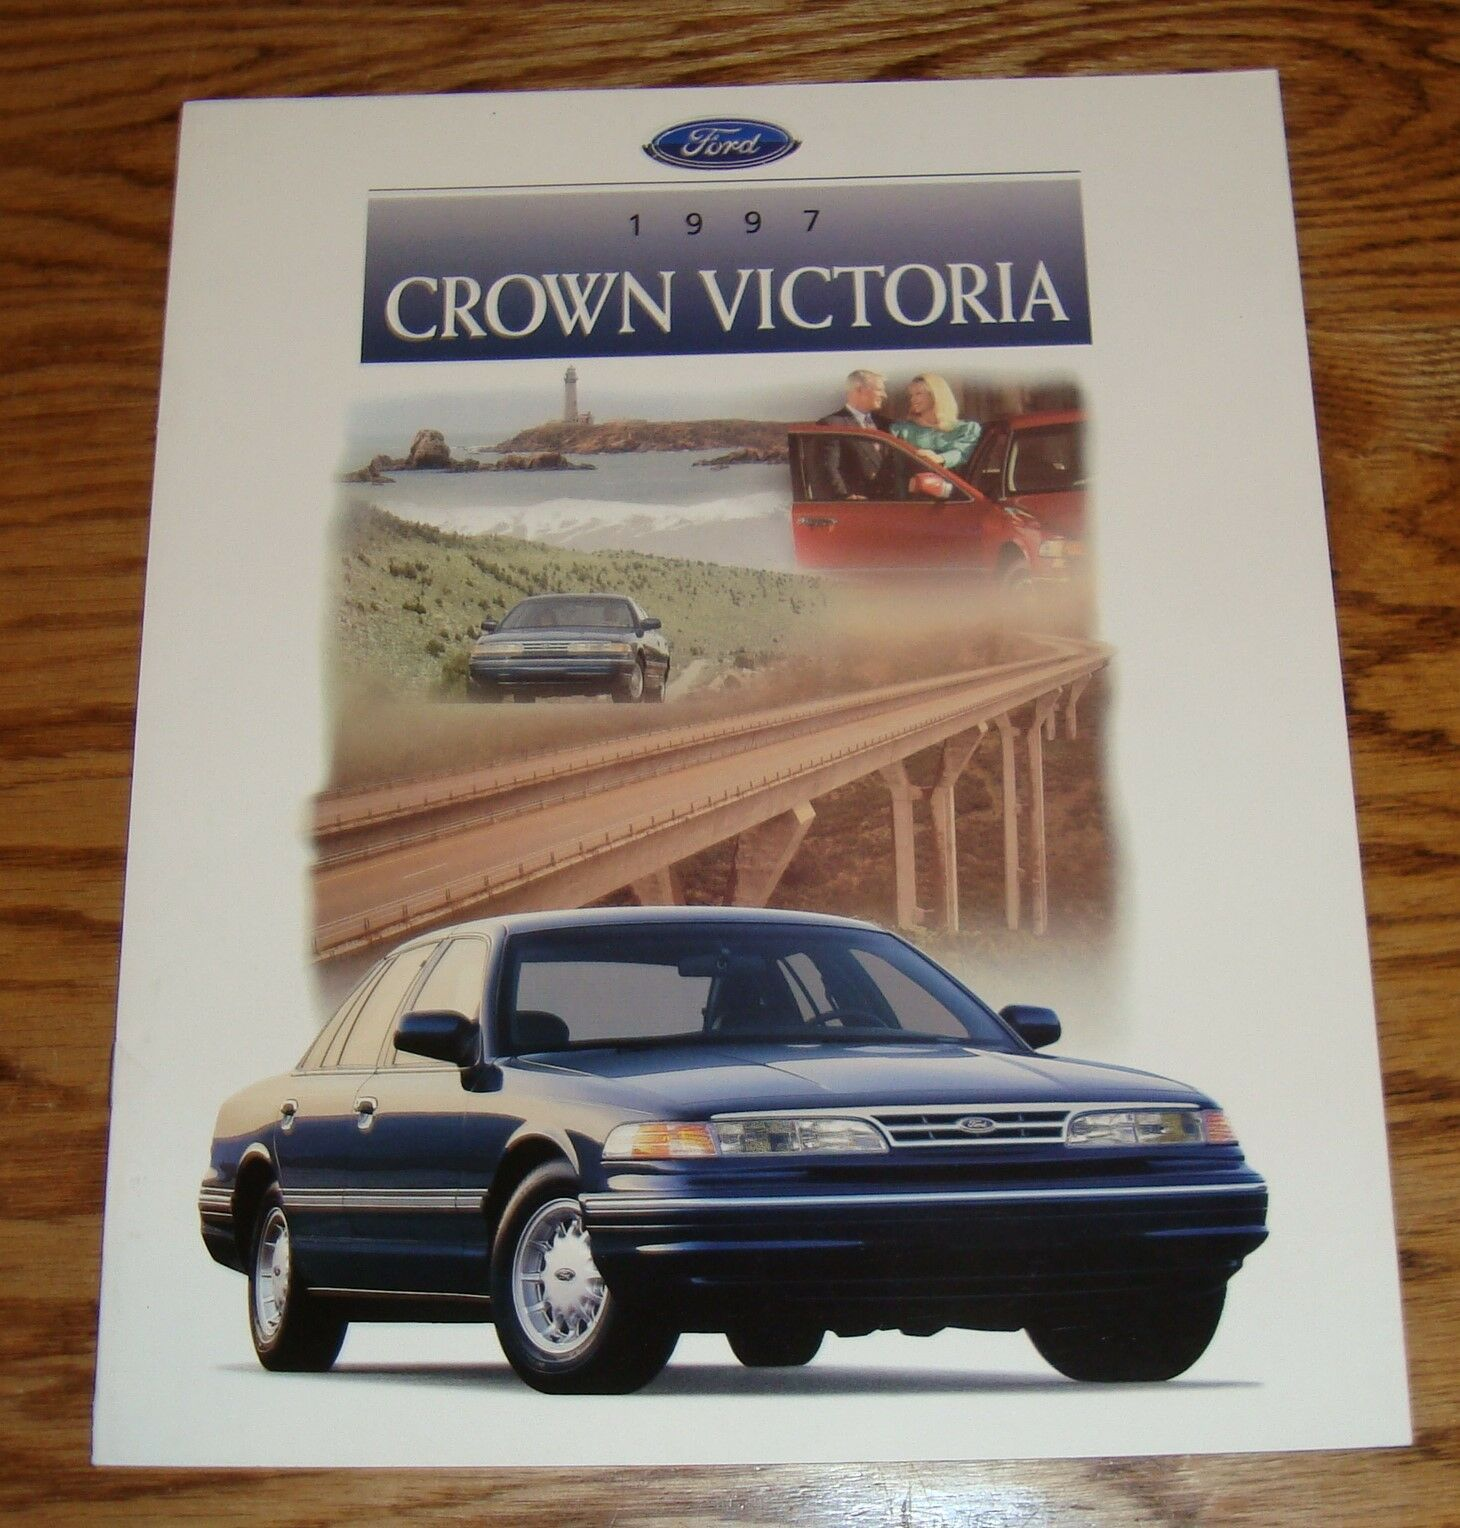 Original 1997 Ford Crown Victoria Sales Brochure 97 LX 1 of 2 See More